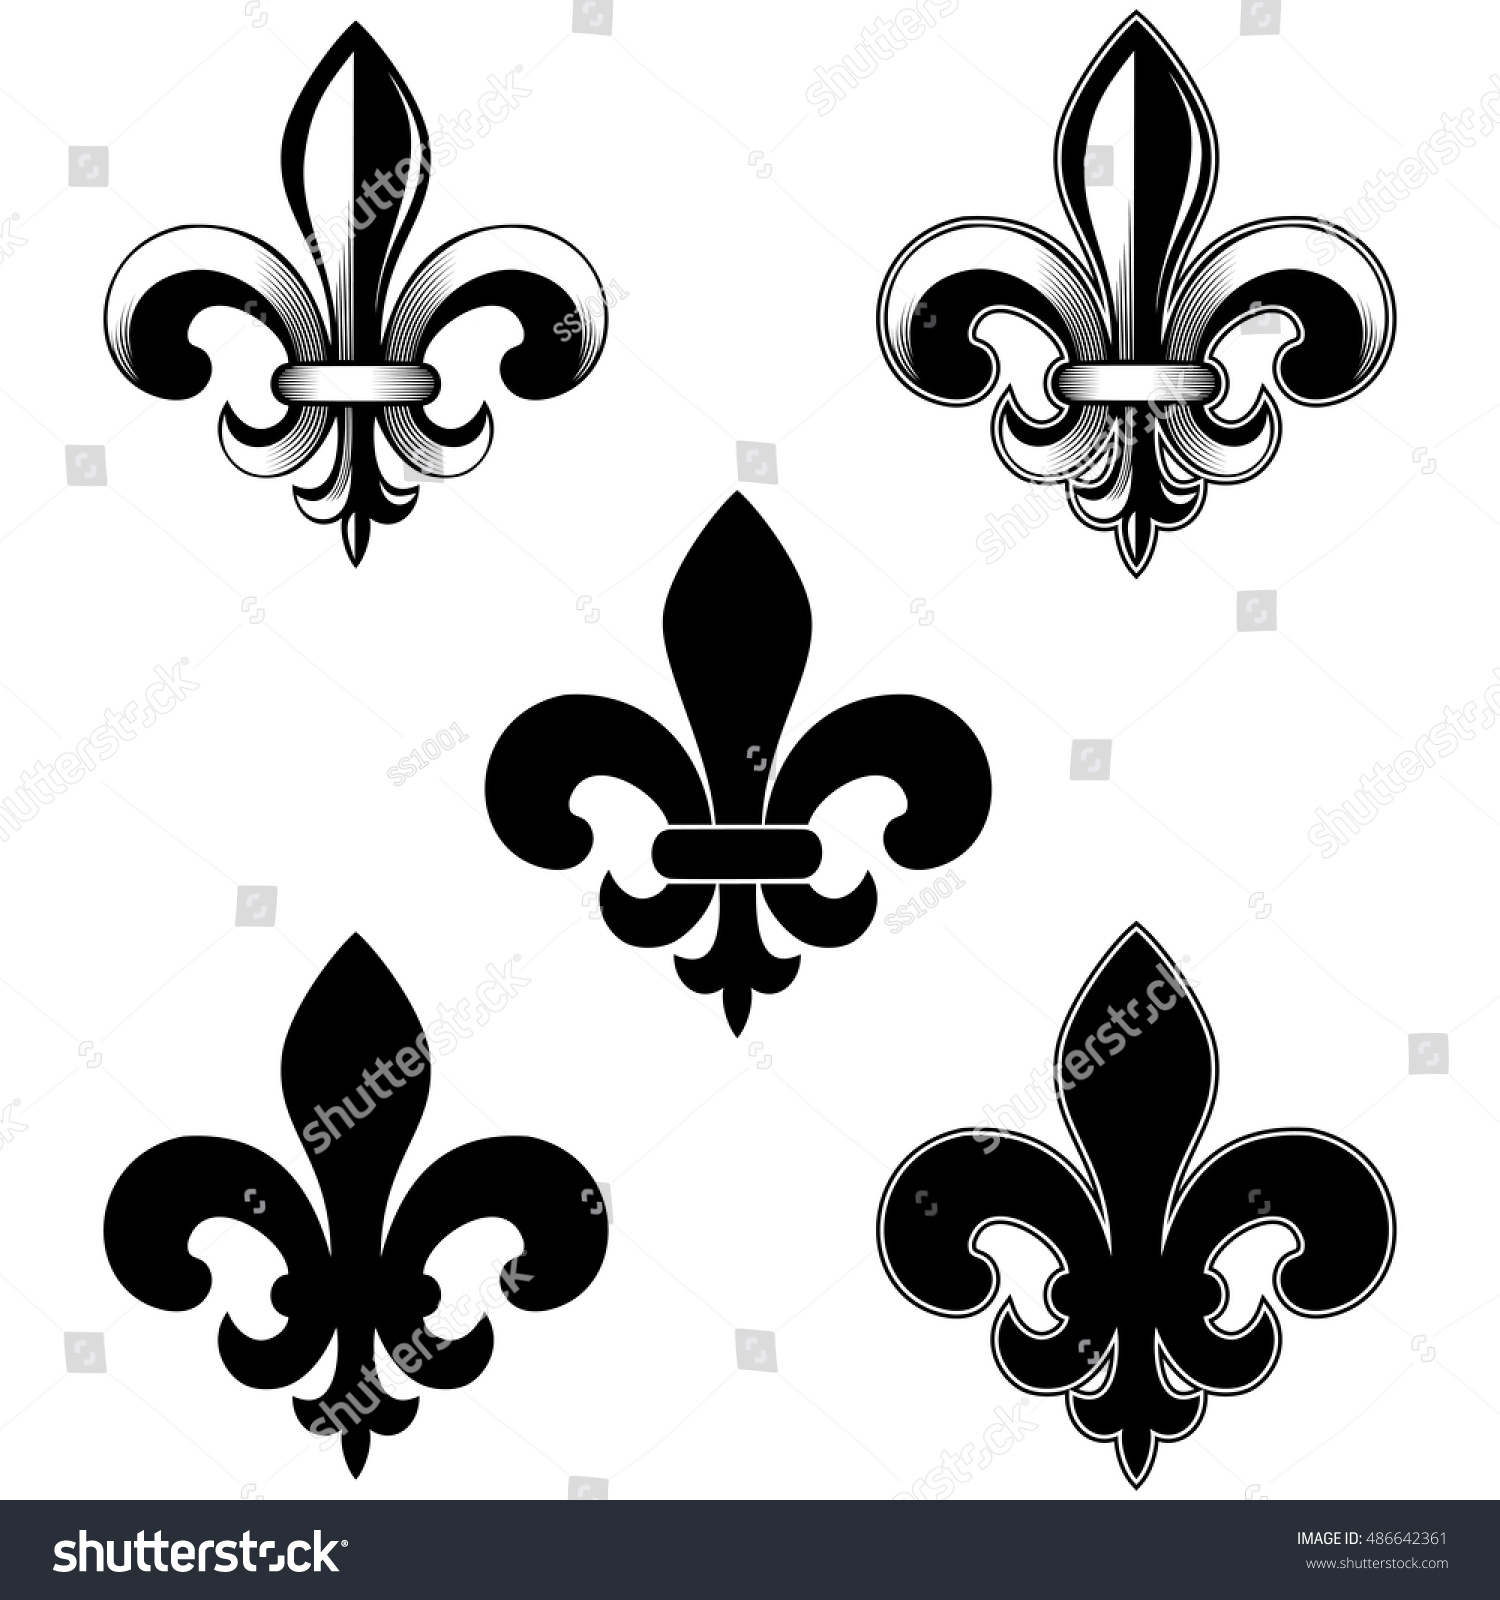 Vector illustration lily flower heraldic emblem stock vector vector illustration lily flower heraldic emblem royal fleur de lis fleur izmirmasajfo